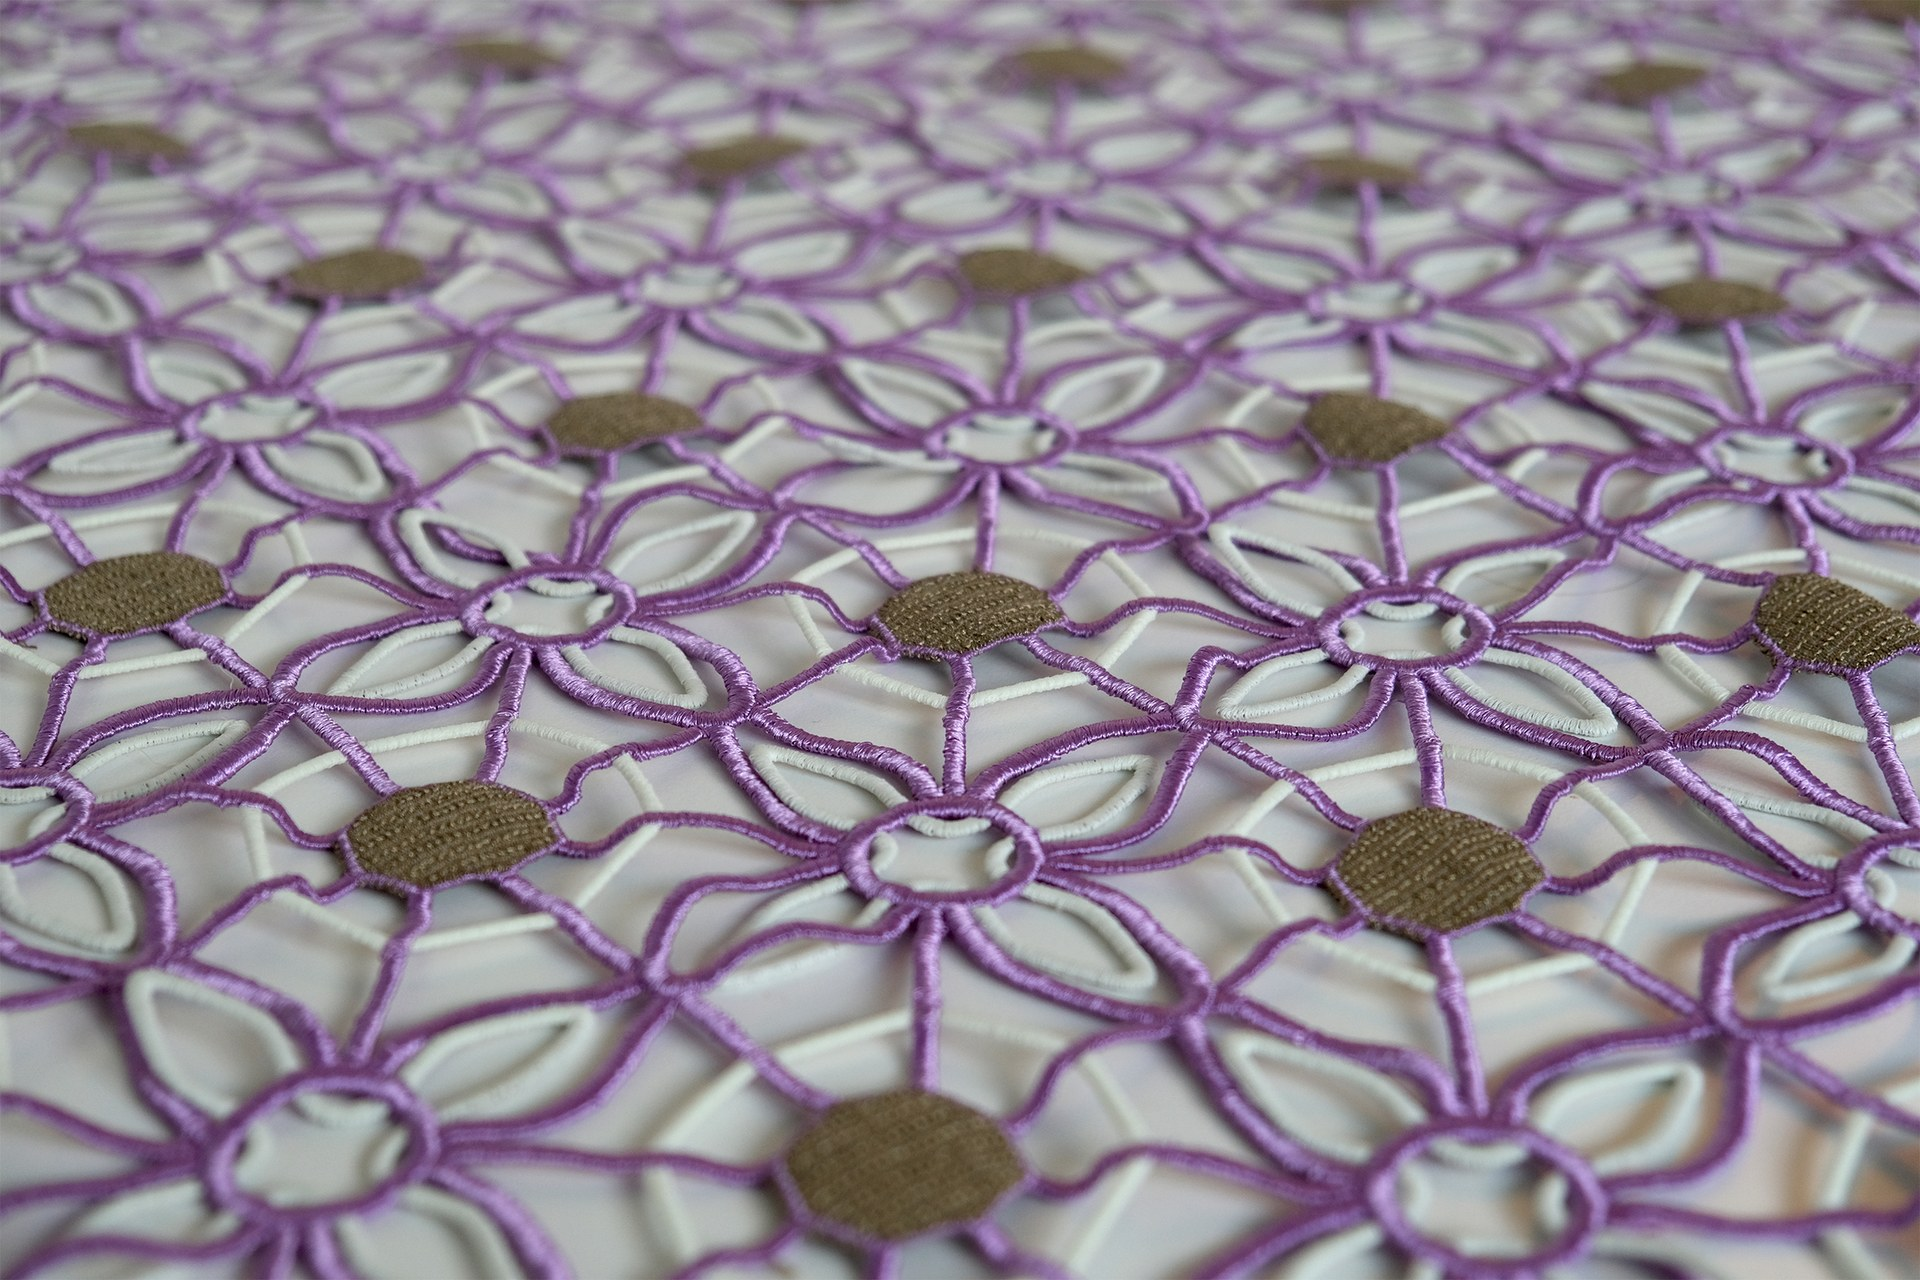 Large scale embroidery pattern with embedded electronics